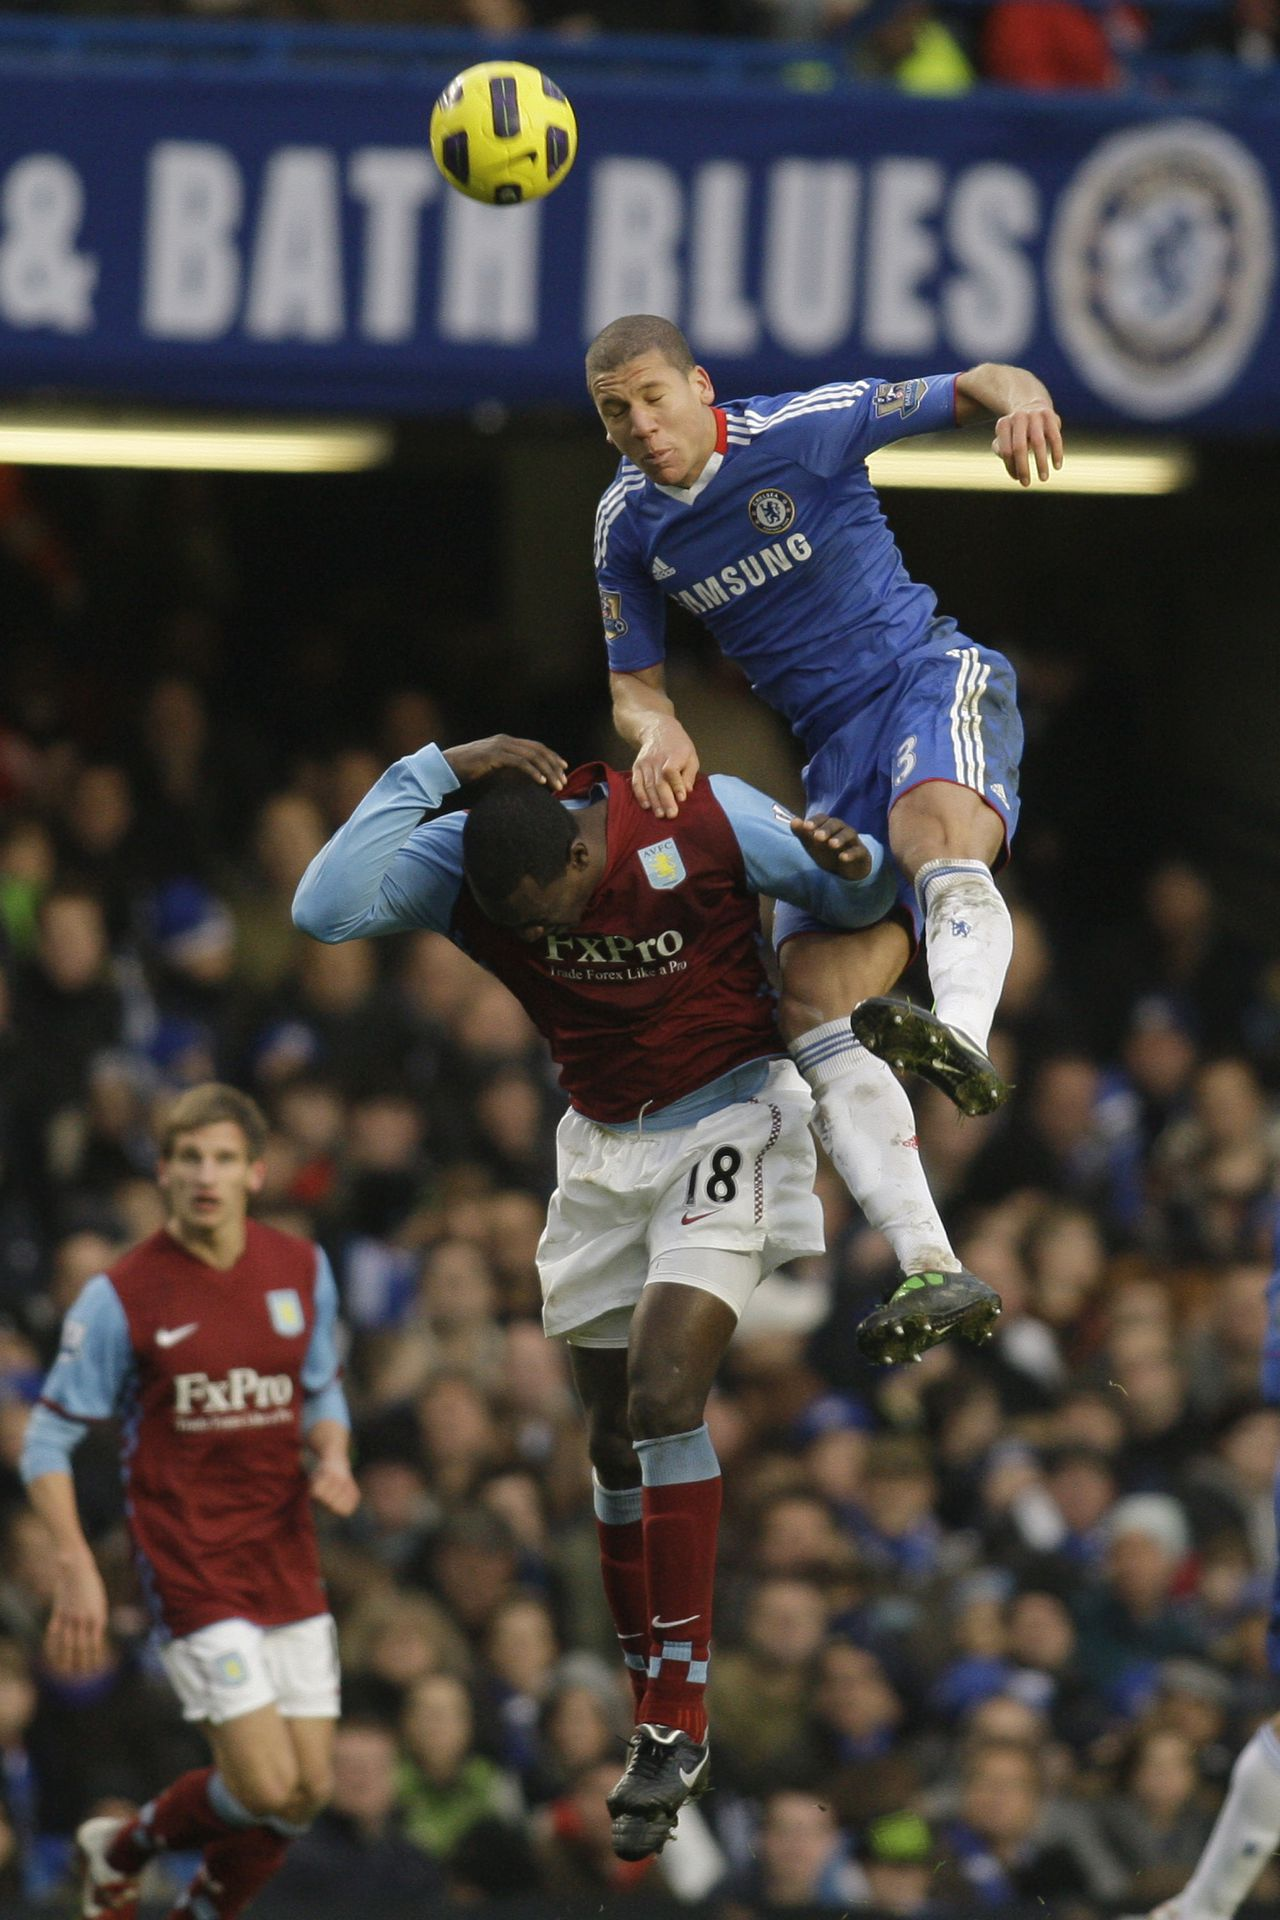 Chelsea's Jeffery Bruma, right, competes with Aston Villa's Emile Heskey during their English Premier League soccer match at Stamford Bridge, London, Sunday, Jan. 2, 2011. (AP Photo/Sang Tan) NO INTERNET/MOBILE USAGE WITHOUT FOOTBALL ASSOCIATION PREMIER LEAGUE (FAPL) LICENCE - CALL +44 (0)20 7864 9121 or EMAIL info@football-dataco.com FOR DETAILS